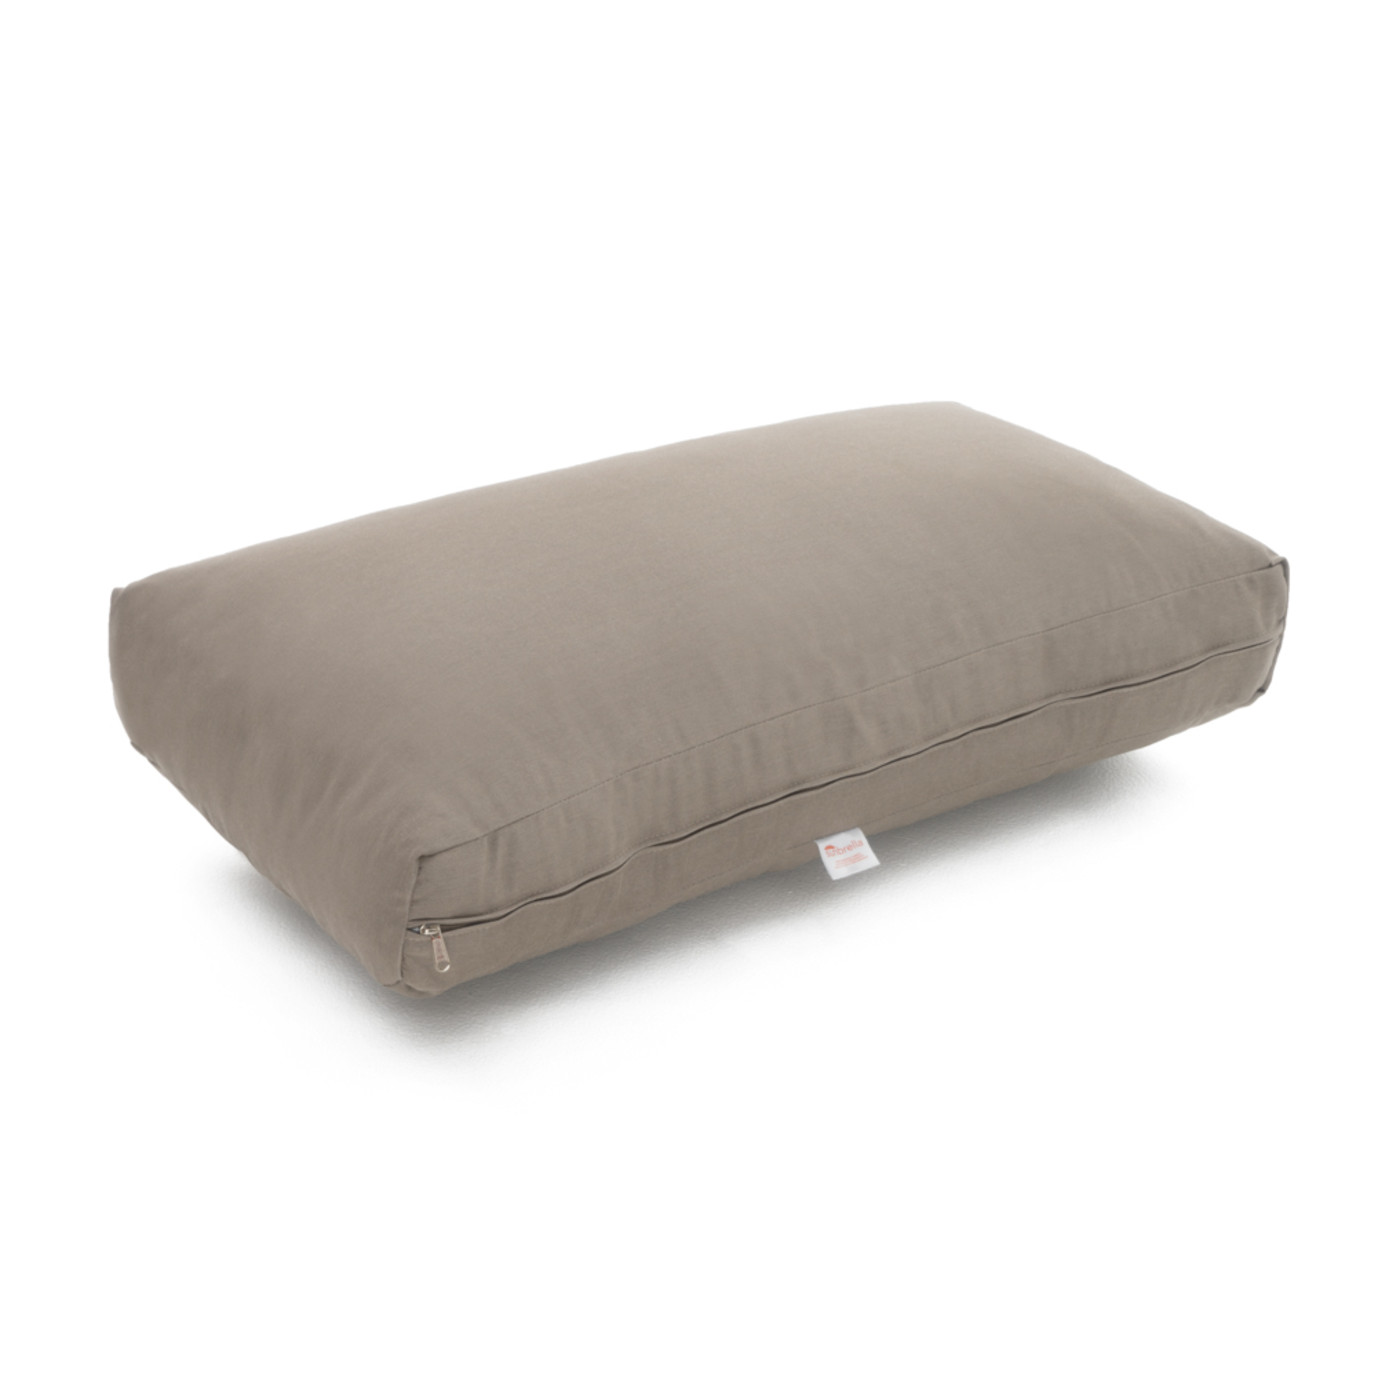 Portofino™ Comfort Loveseat Back Cushion - Kona Taupe